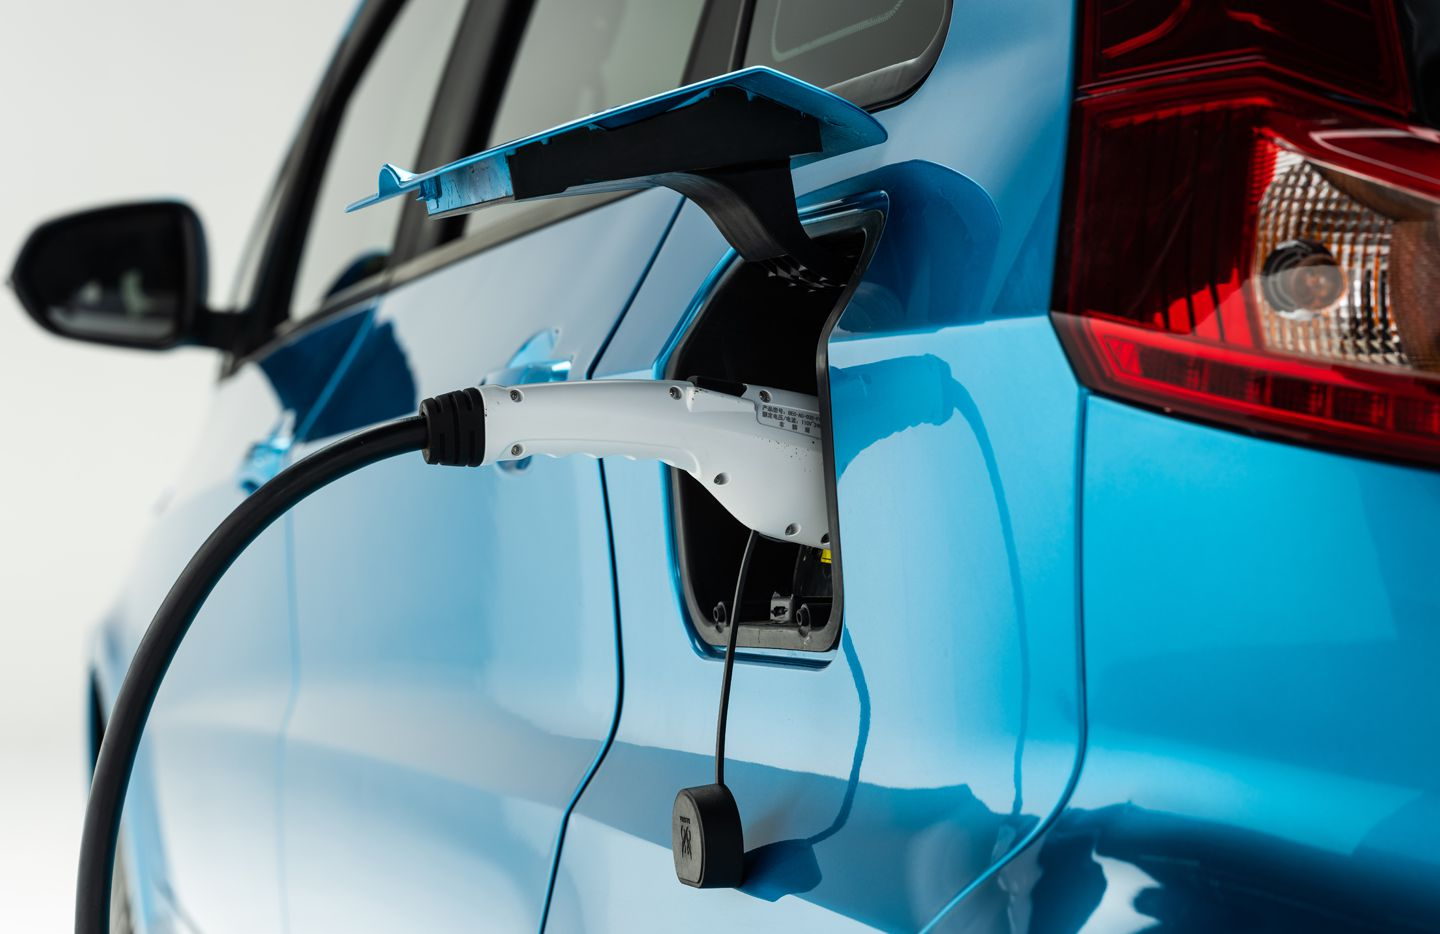 Kandi America is moving its headquarters from Garland to a high-profile Dallas intersection as it seeks to introduce Chinese-made electric cars in the U.S.